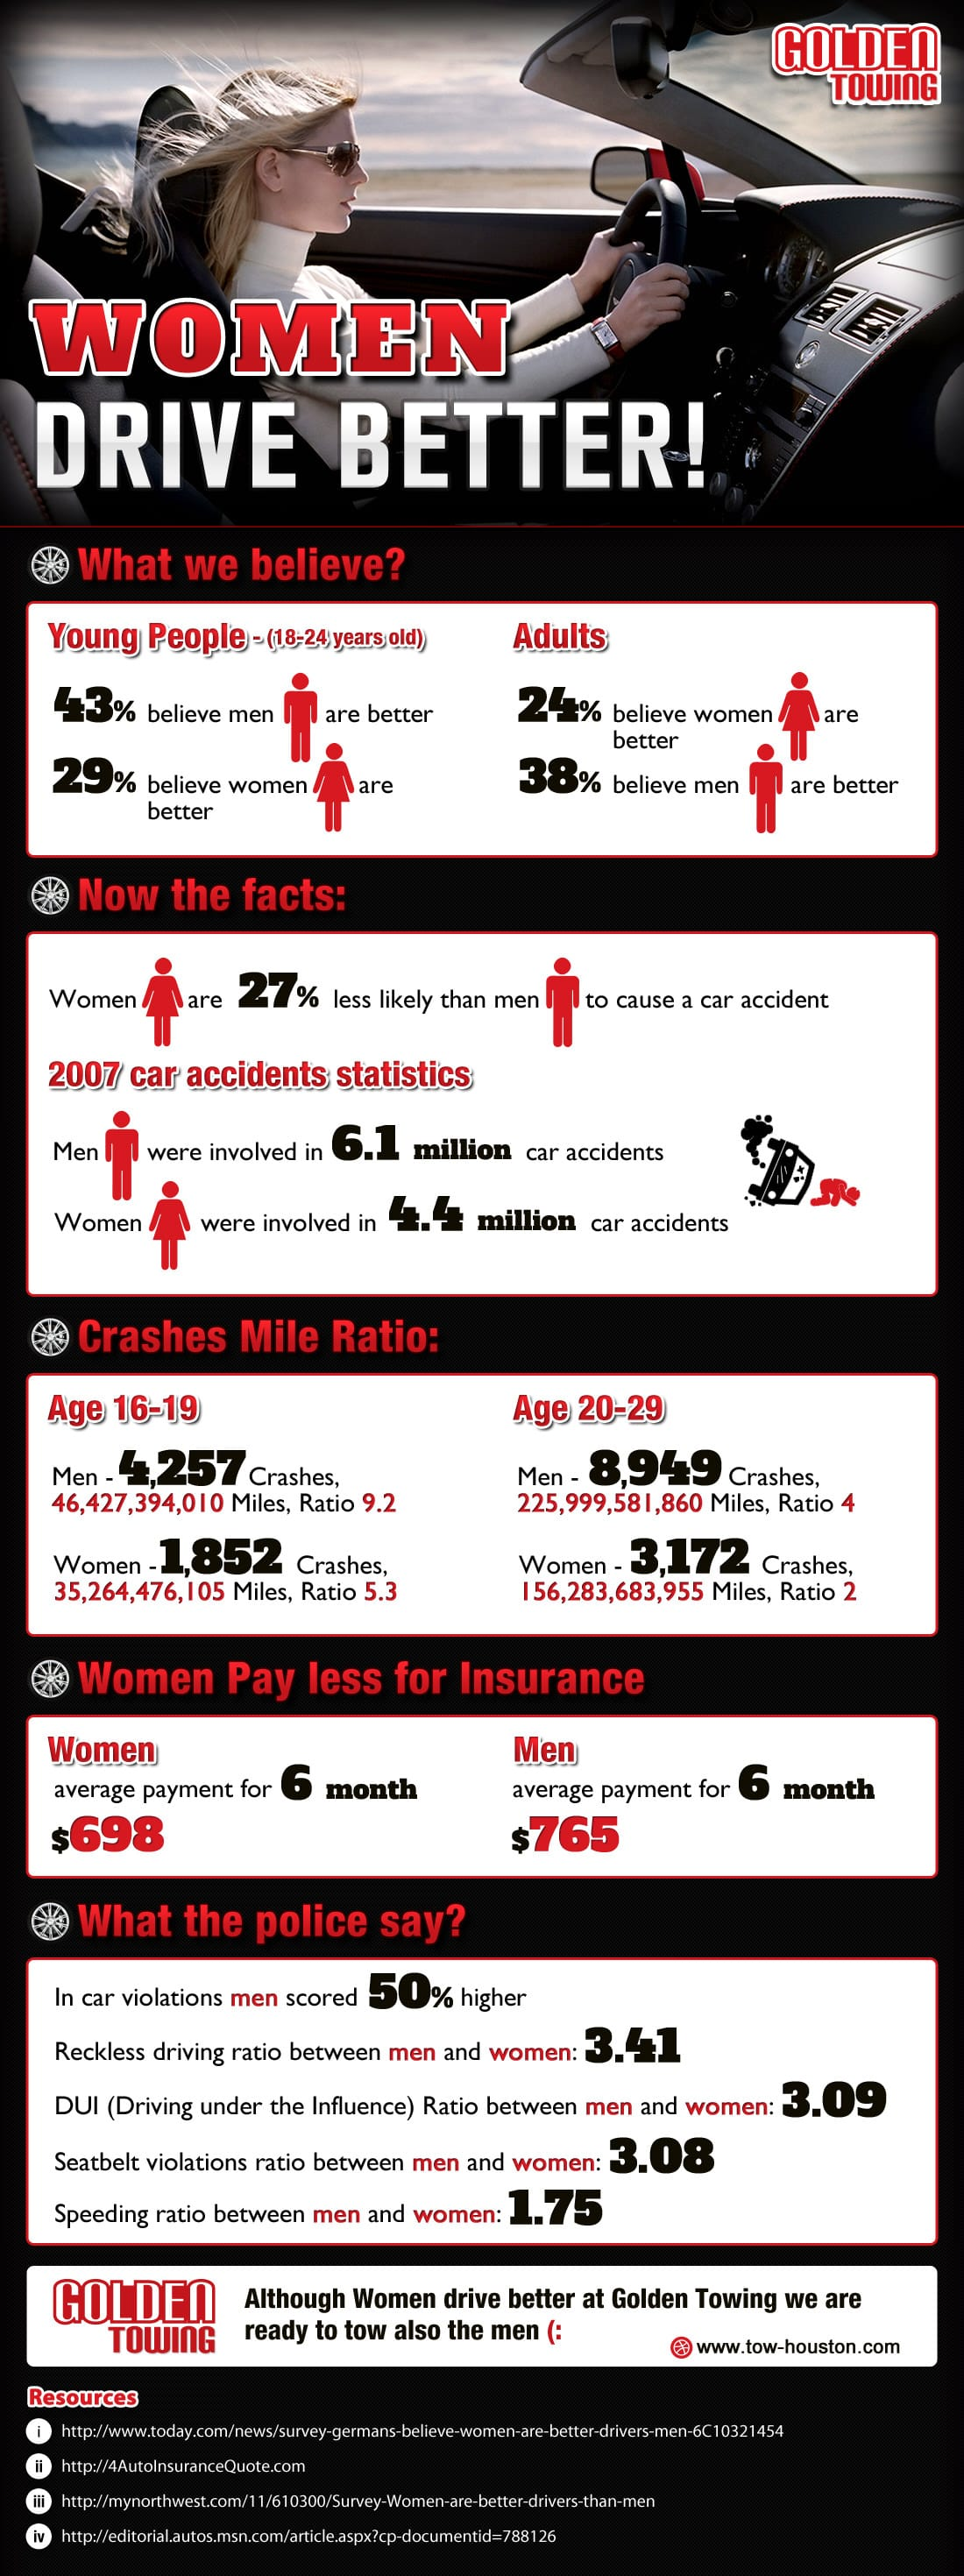 Who drives better - men or women? [INFOGRAPHIC]